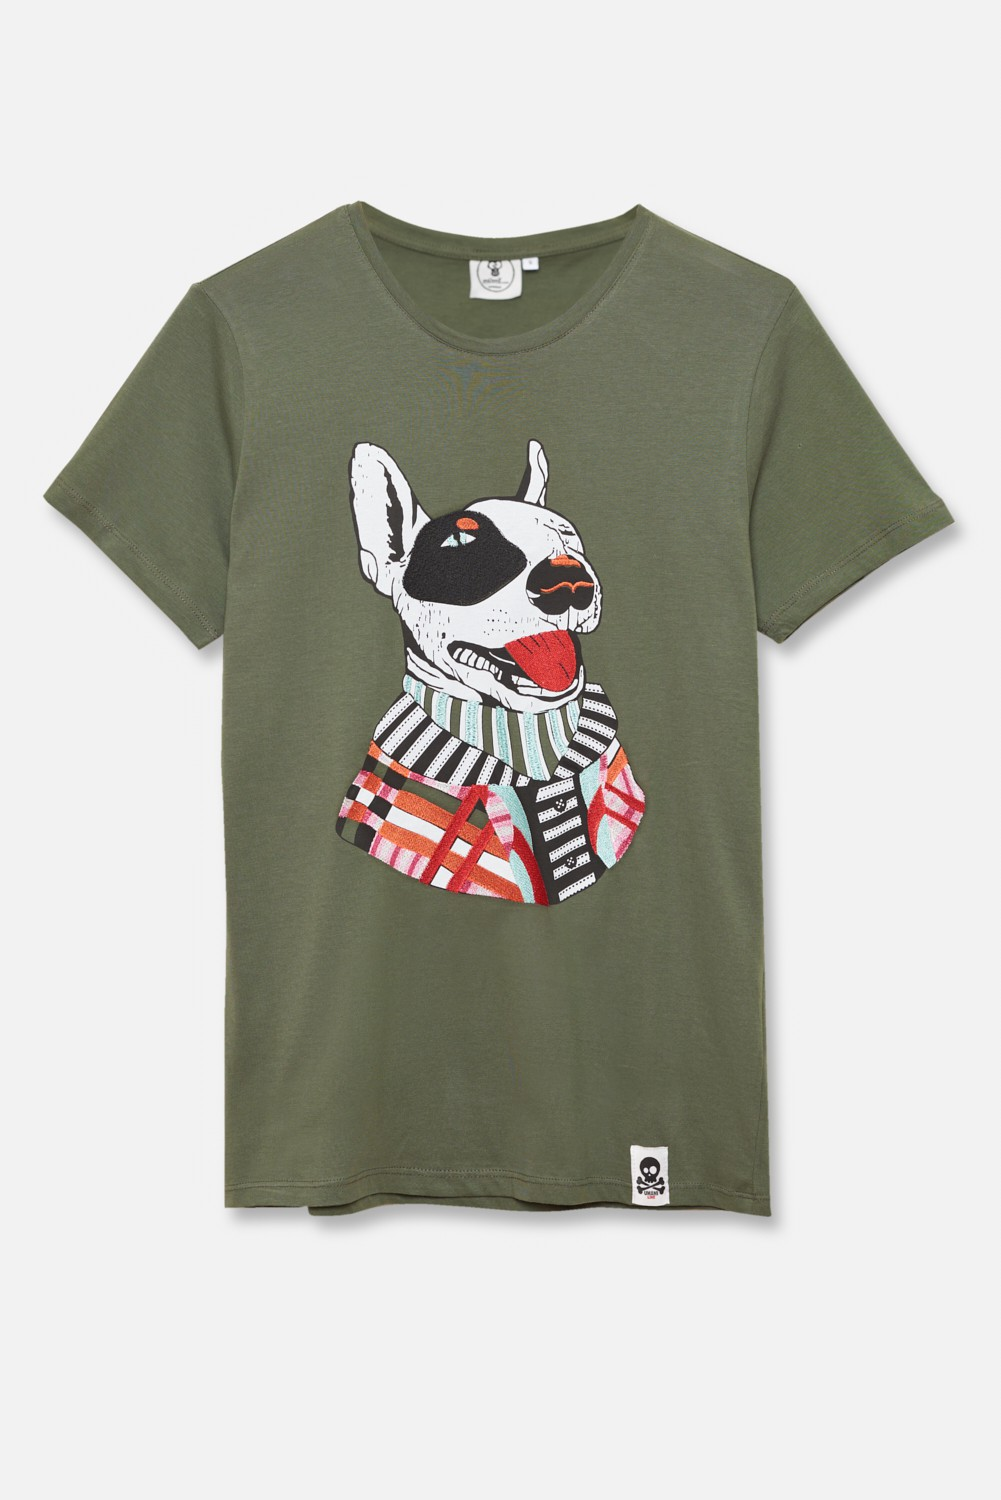 ADULT´S EMBROIDERED T-SHIRT UMAMI LINE SNUG TERRIER